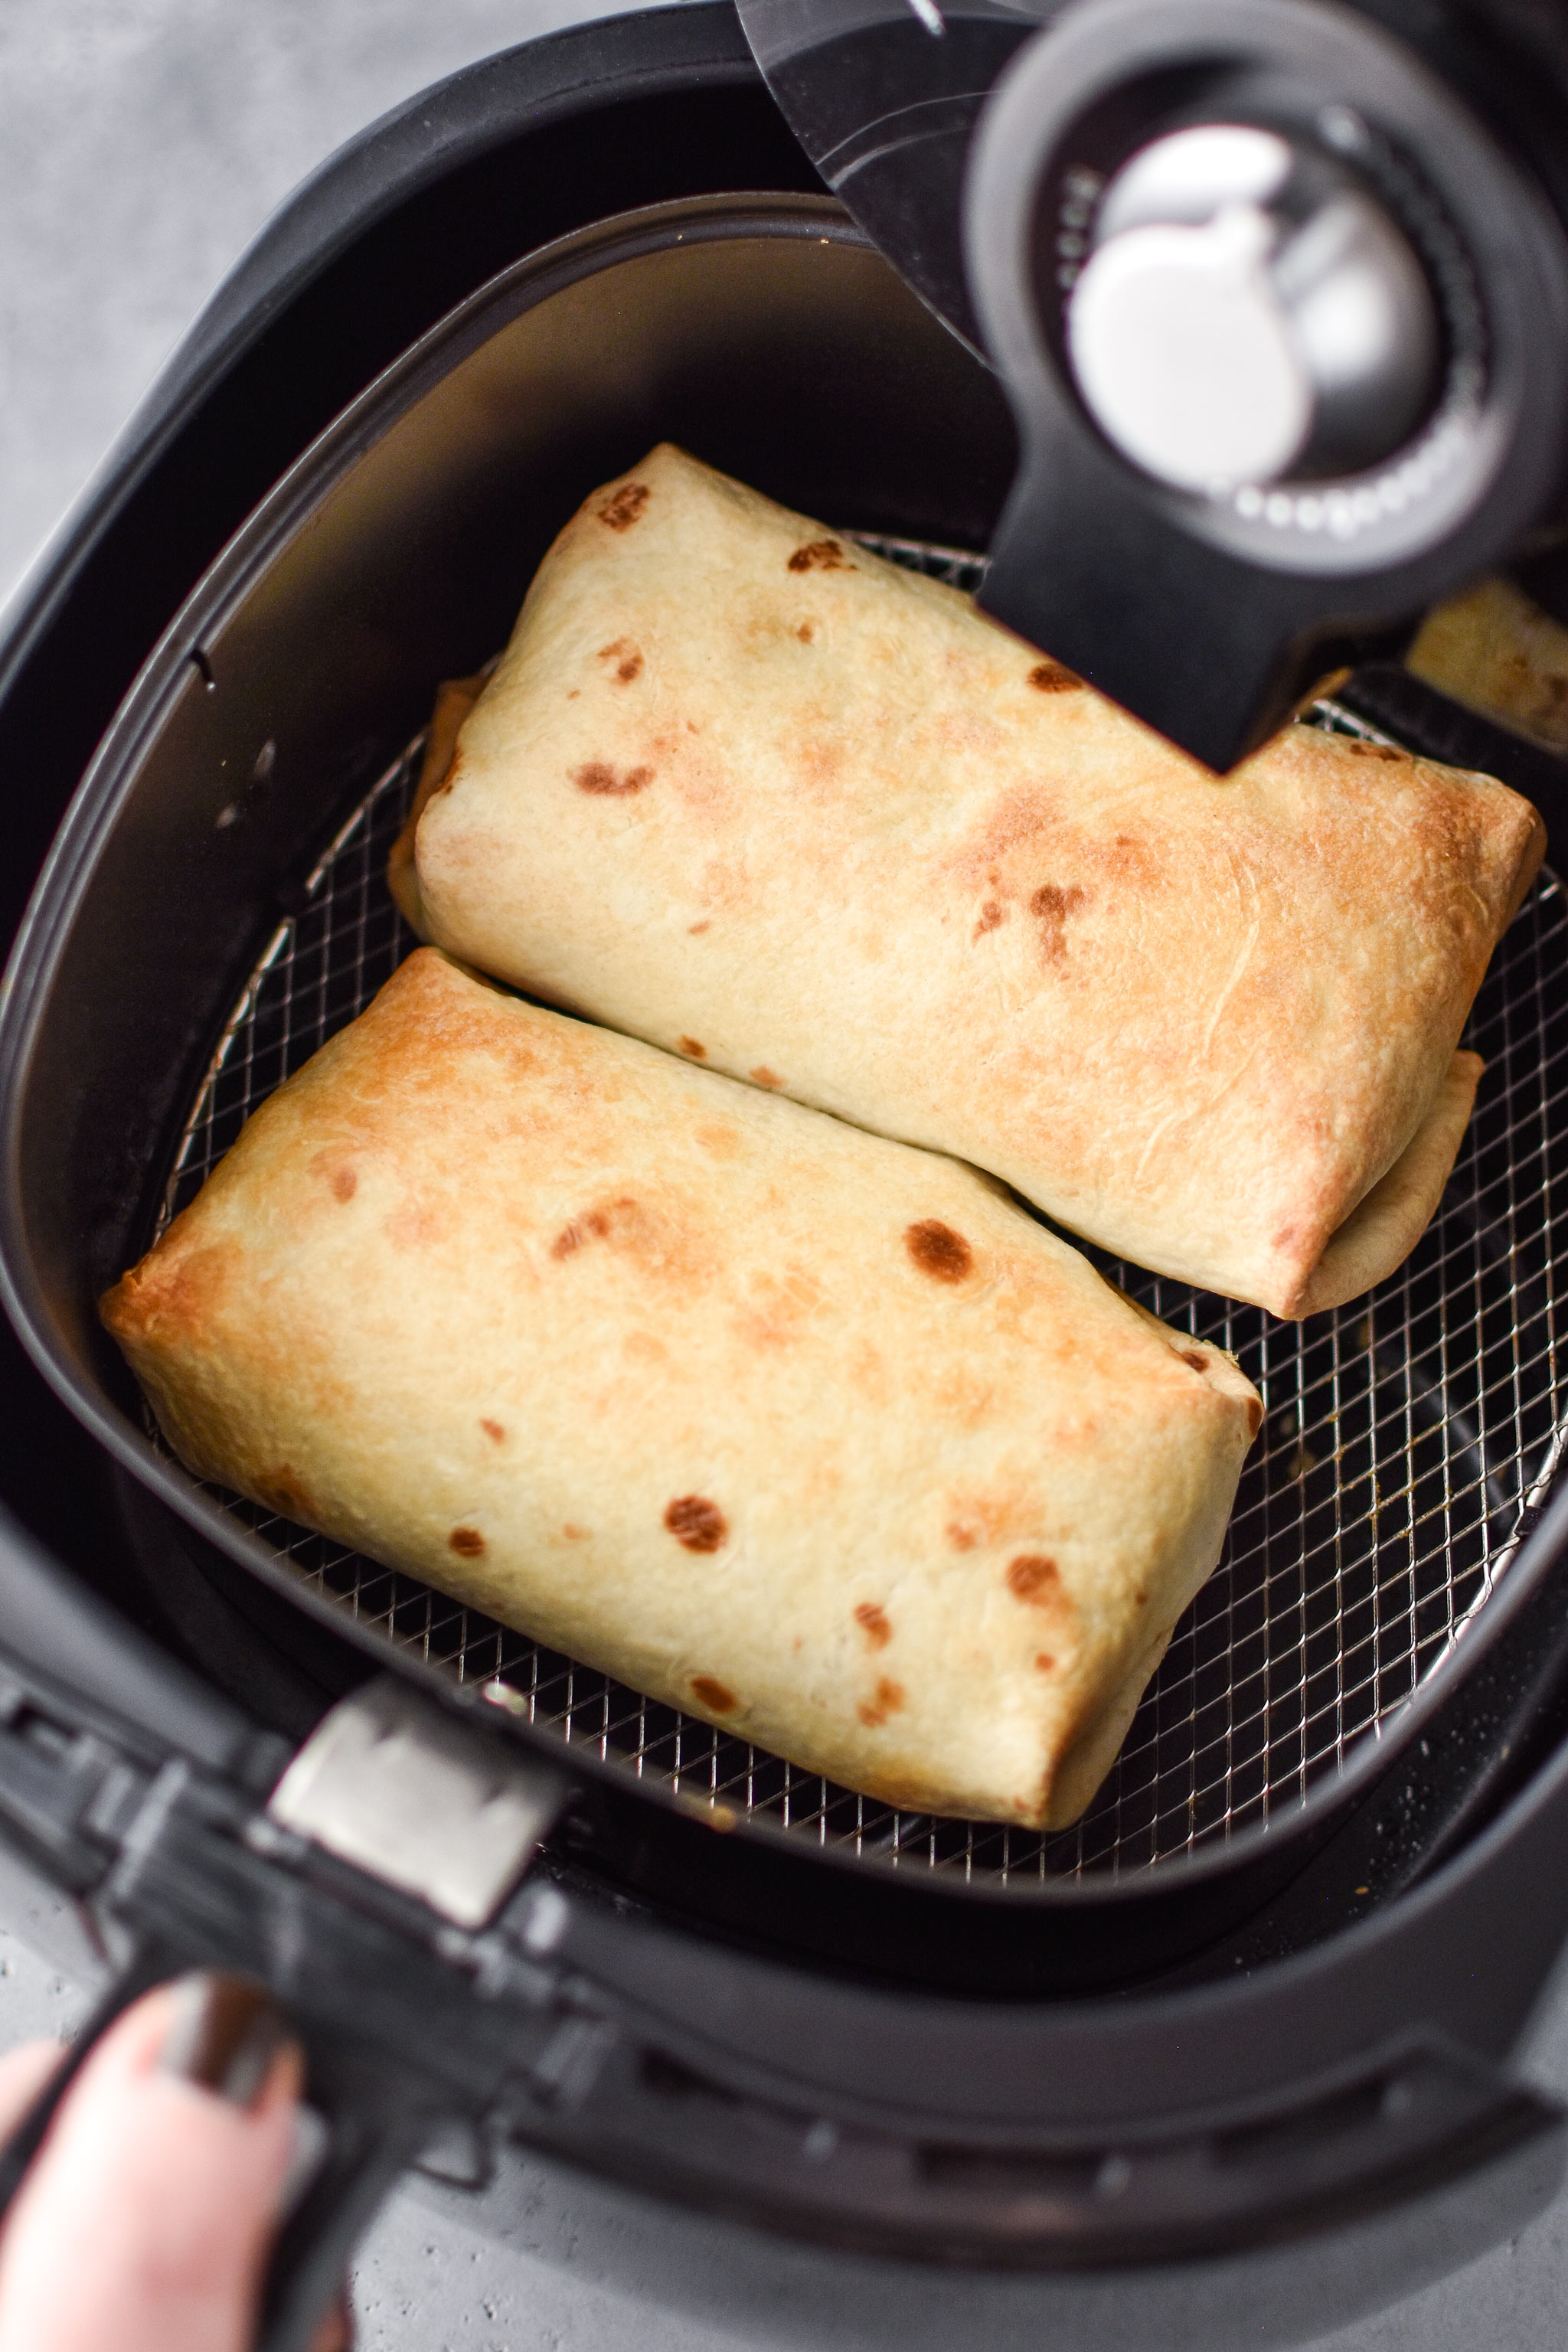 chimichangas fresh from the air fryer - how to make chimichangas in an air fryer